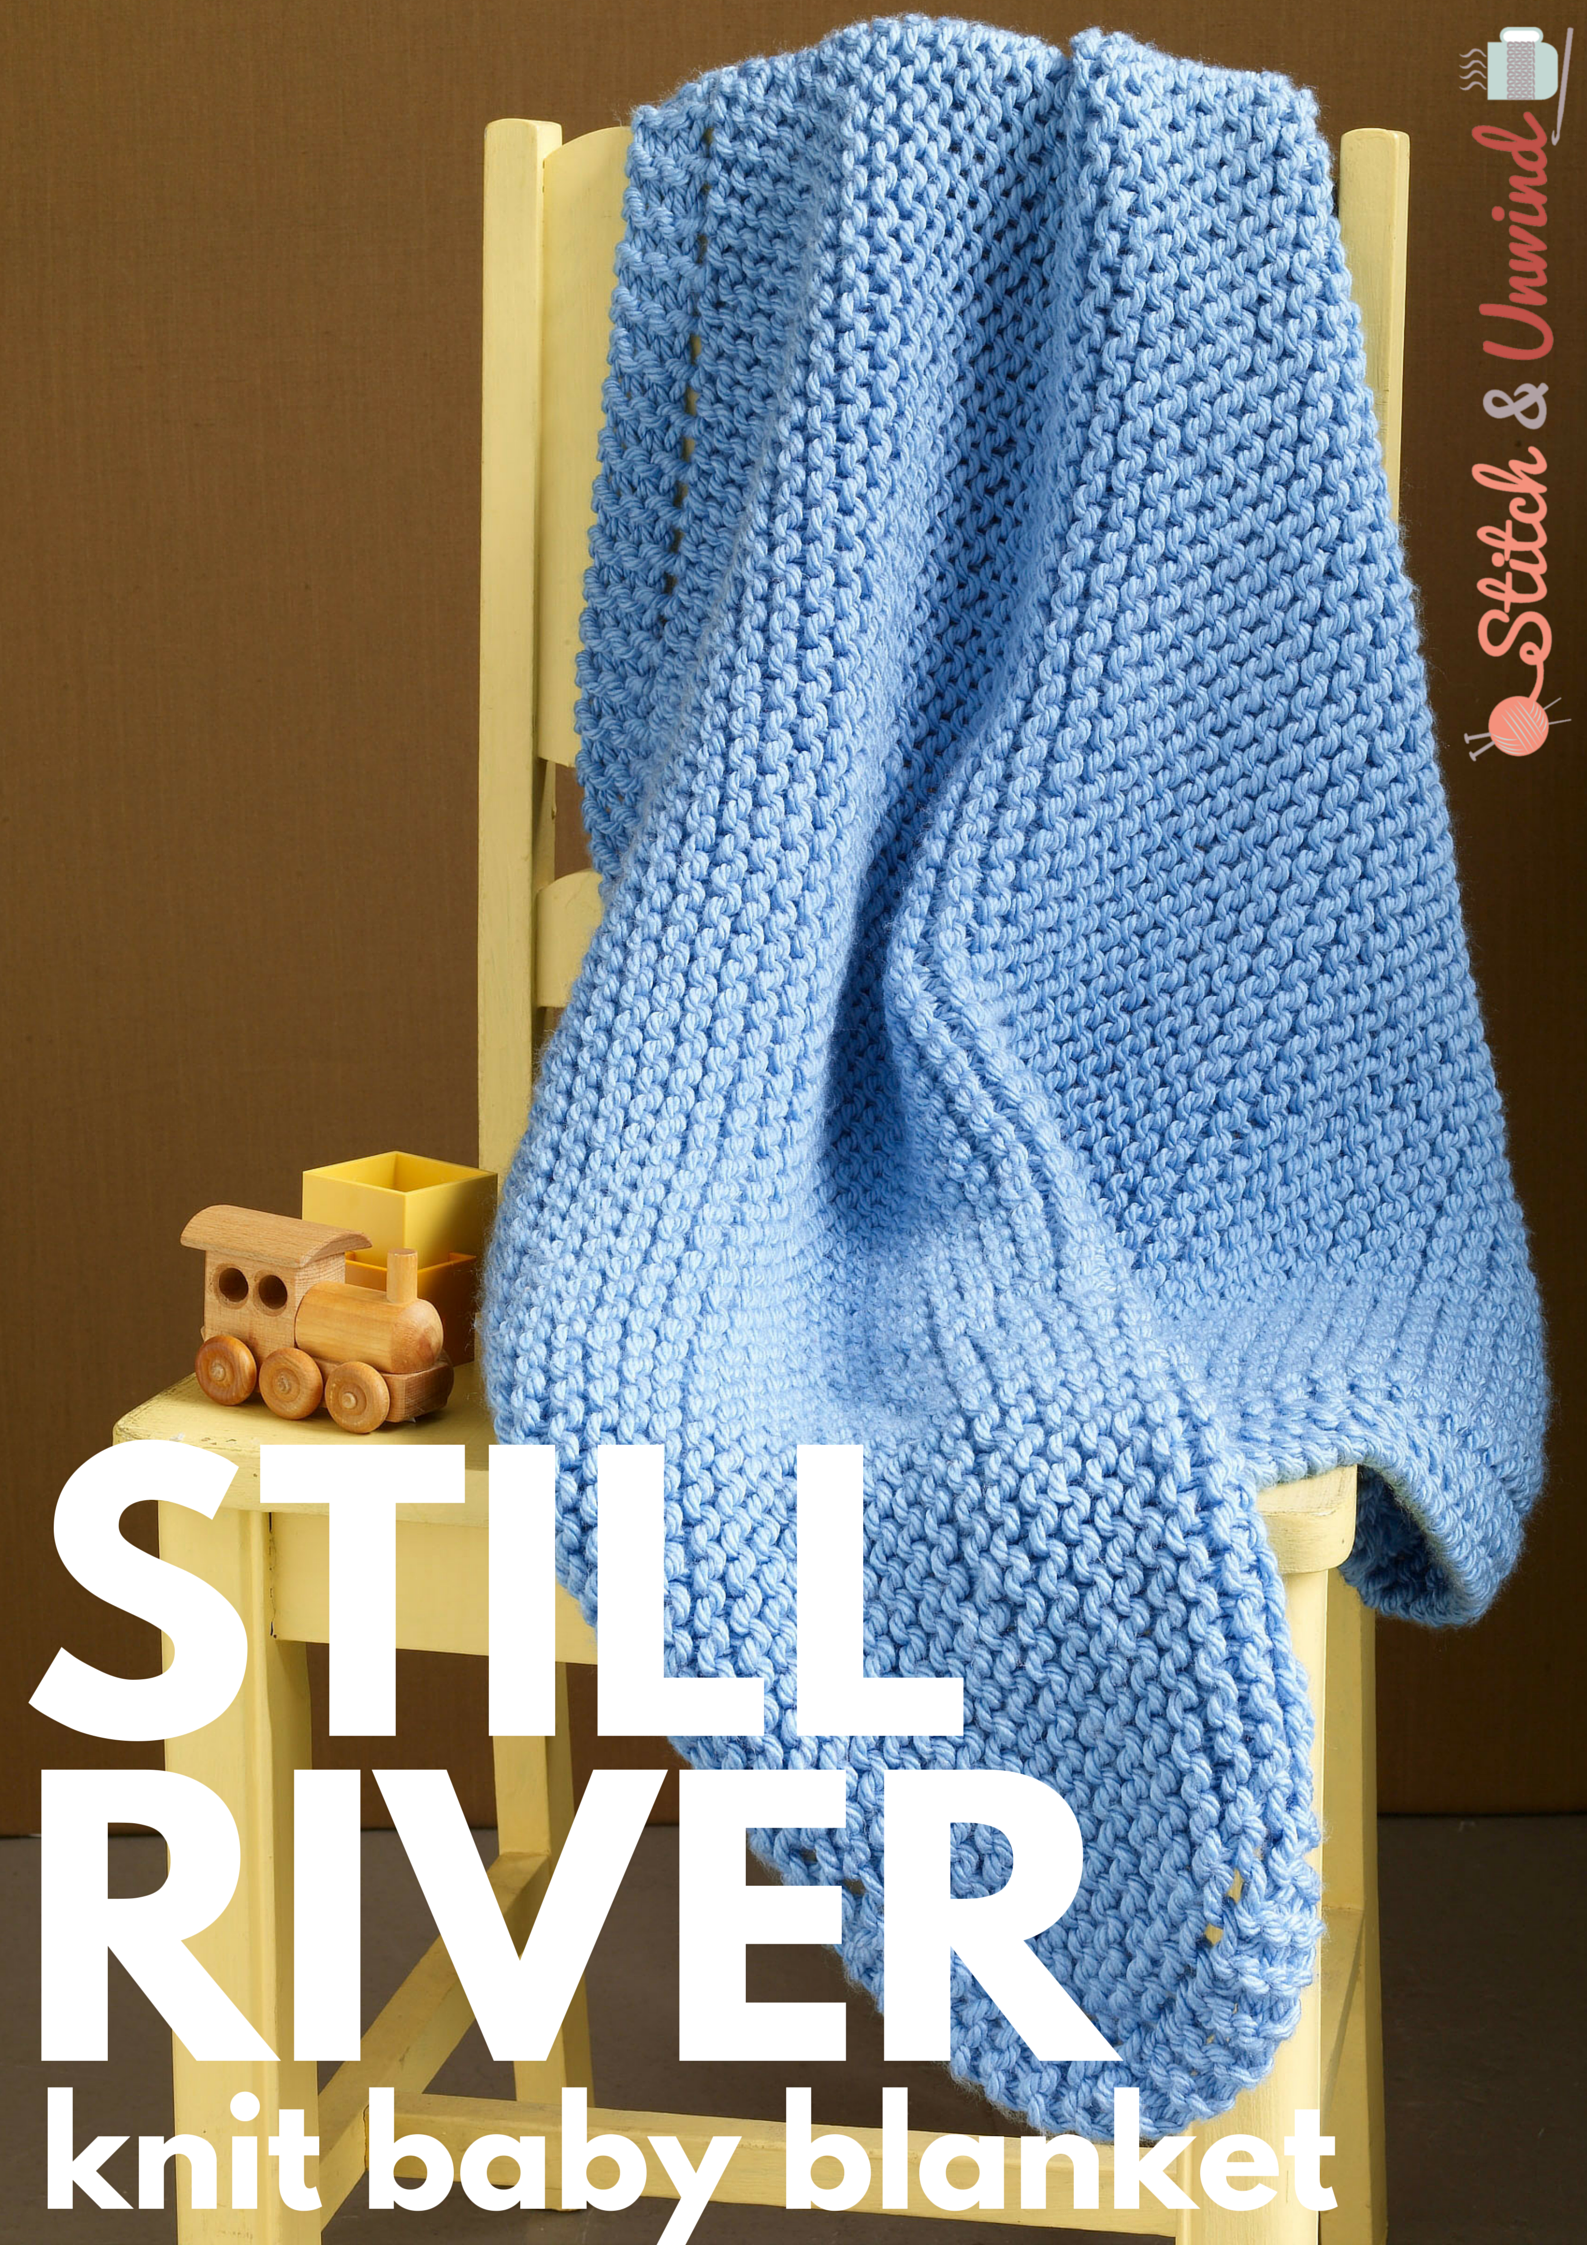 The Ultimate Baby Knit: Still River Baby Blanket | Pinterest ...